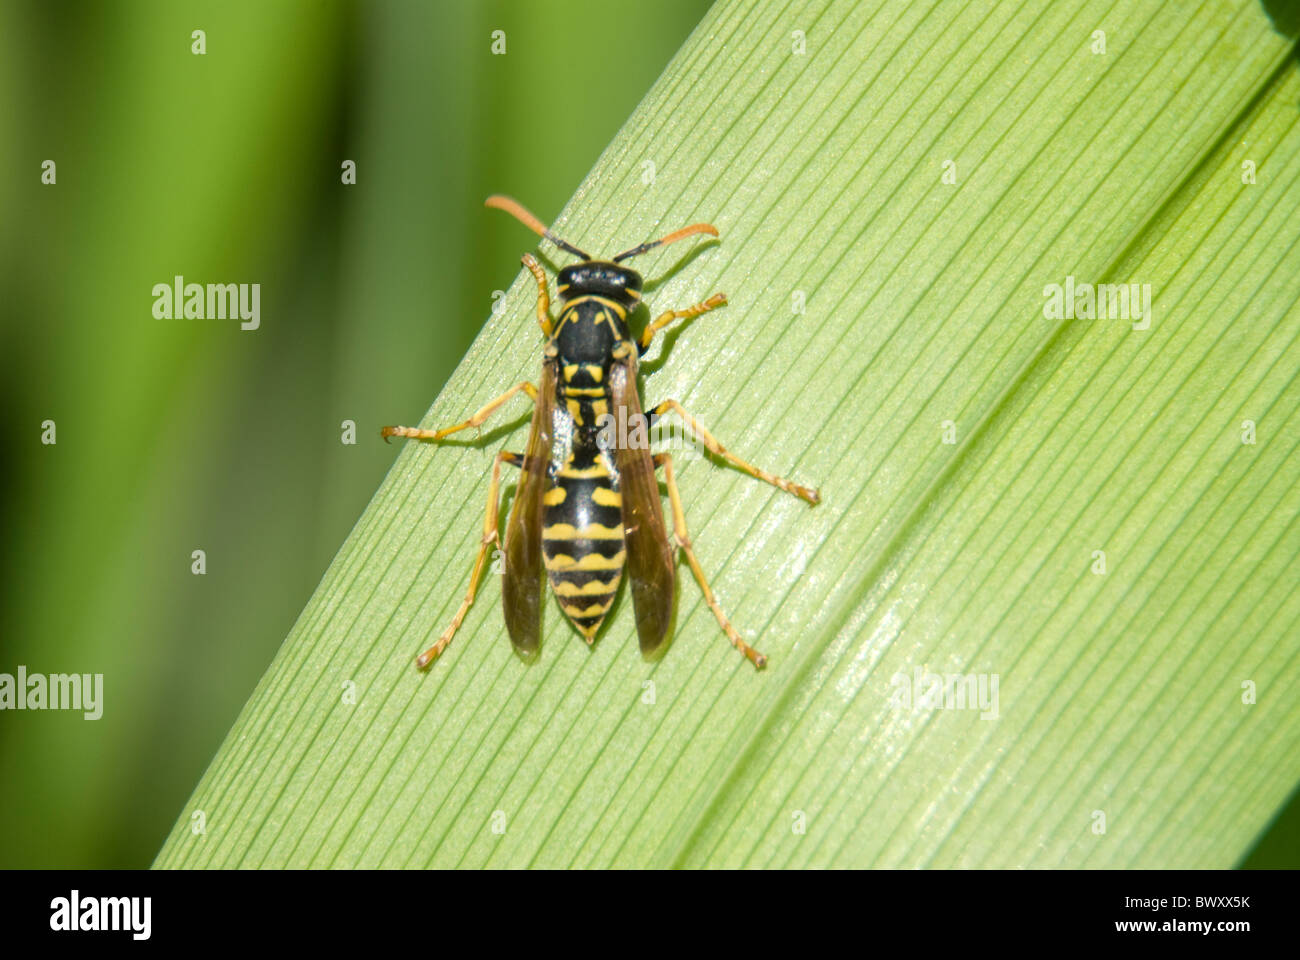 Yellow jacket wasp resting on a green leaf in the garden. - Stock Image